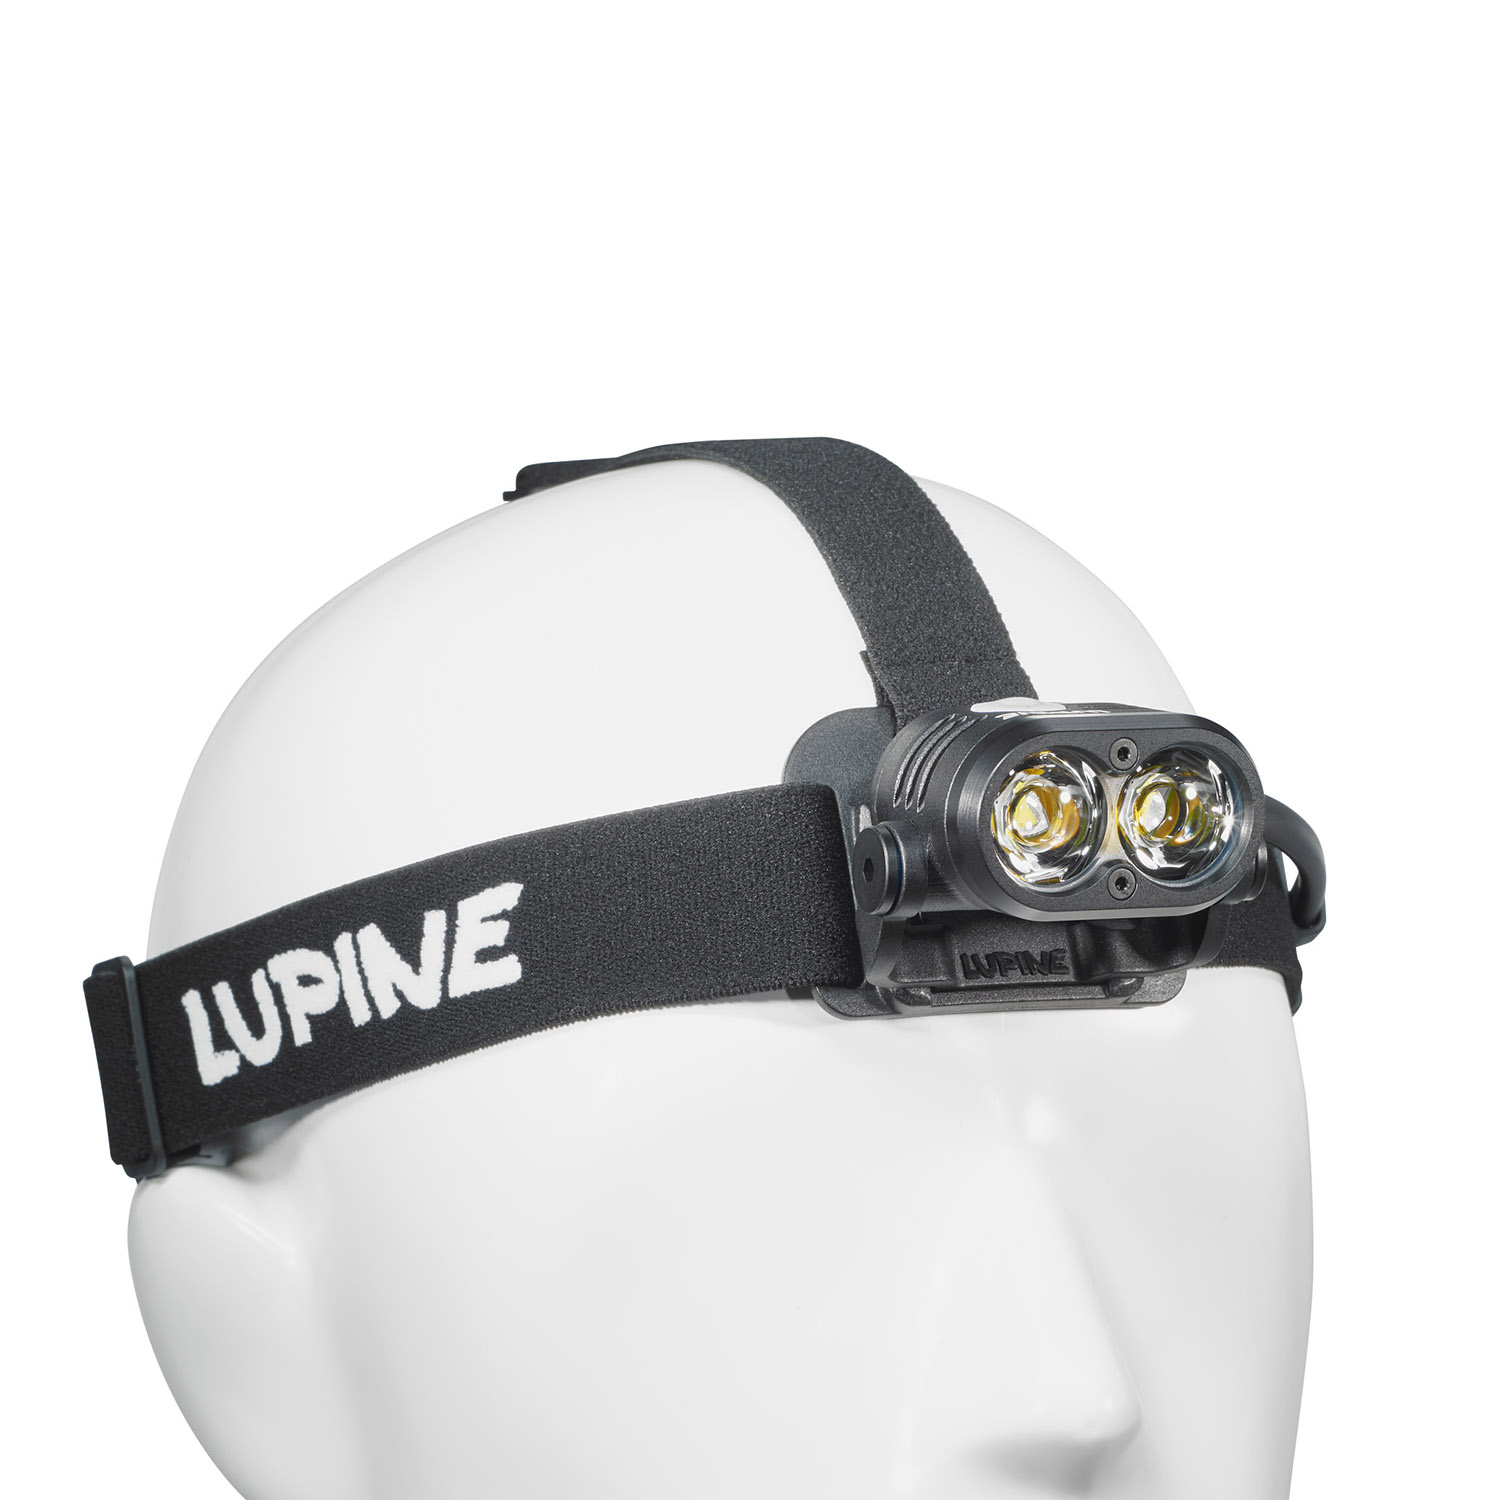 2019 Piko X 7 Headlamp